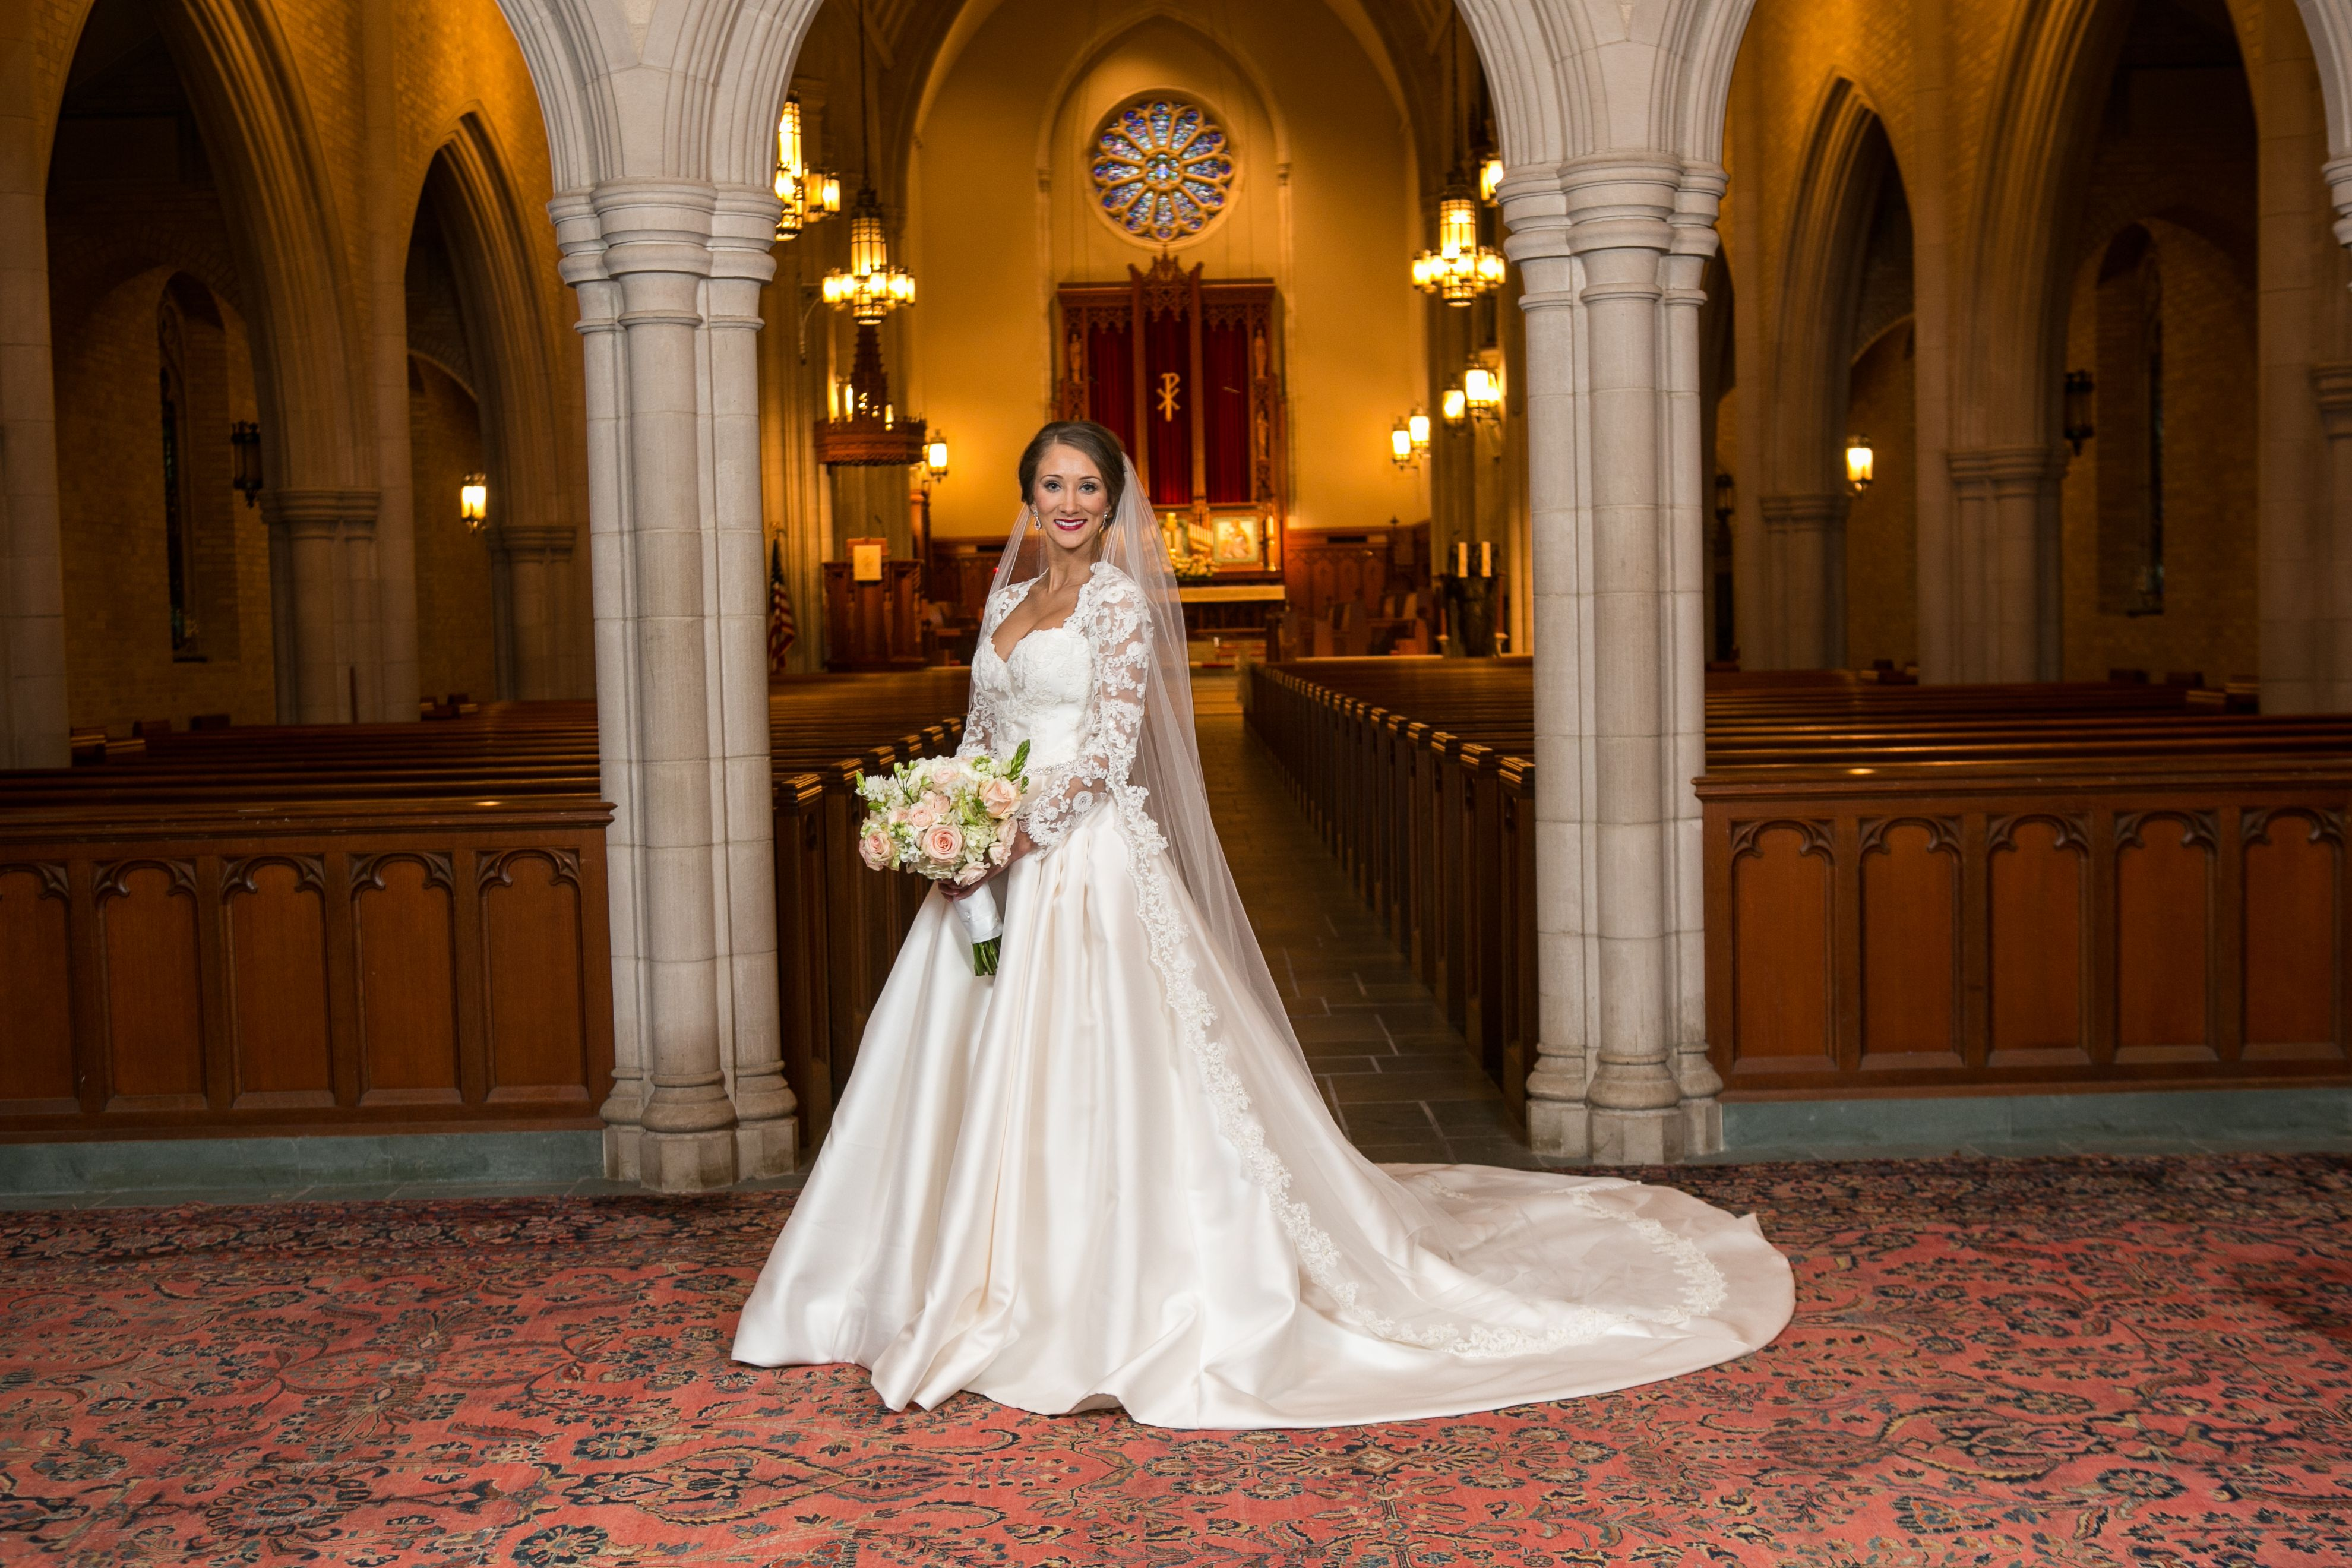 St. Marks Cathedral Shreveport, LA | The Blailey Wedding ...